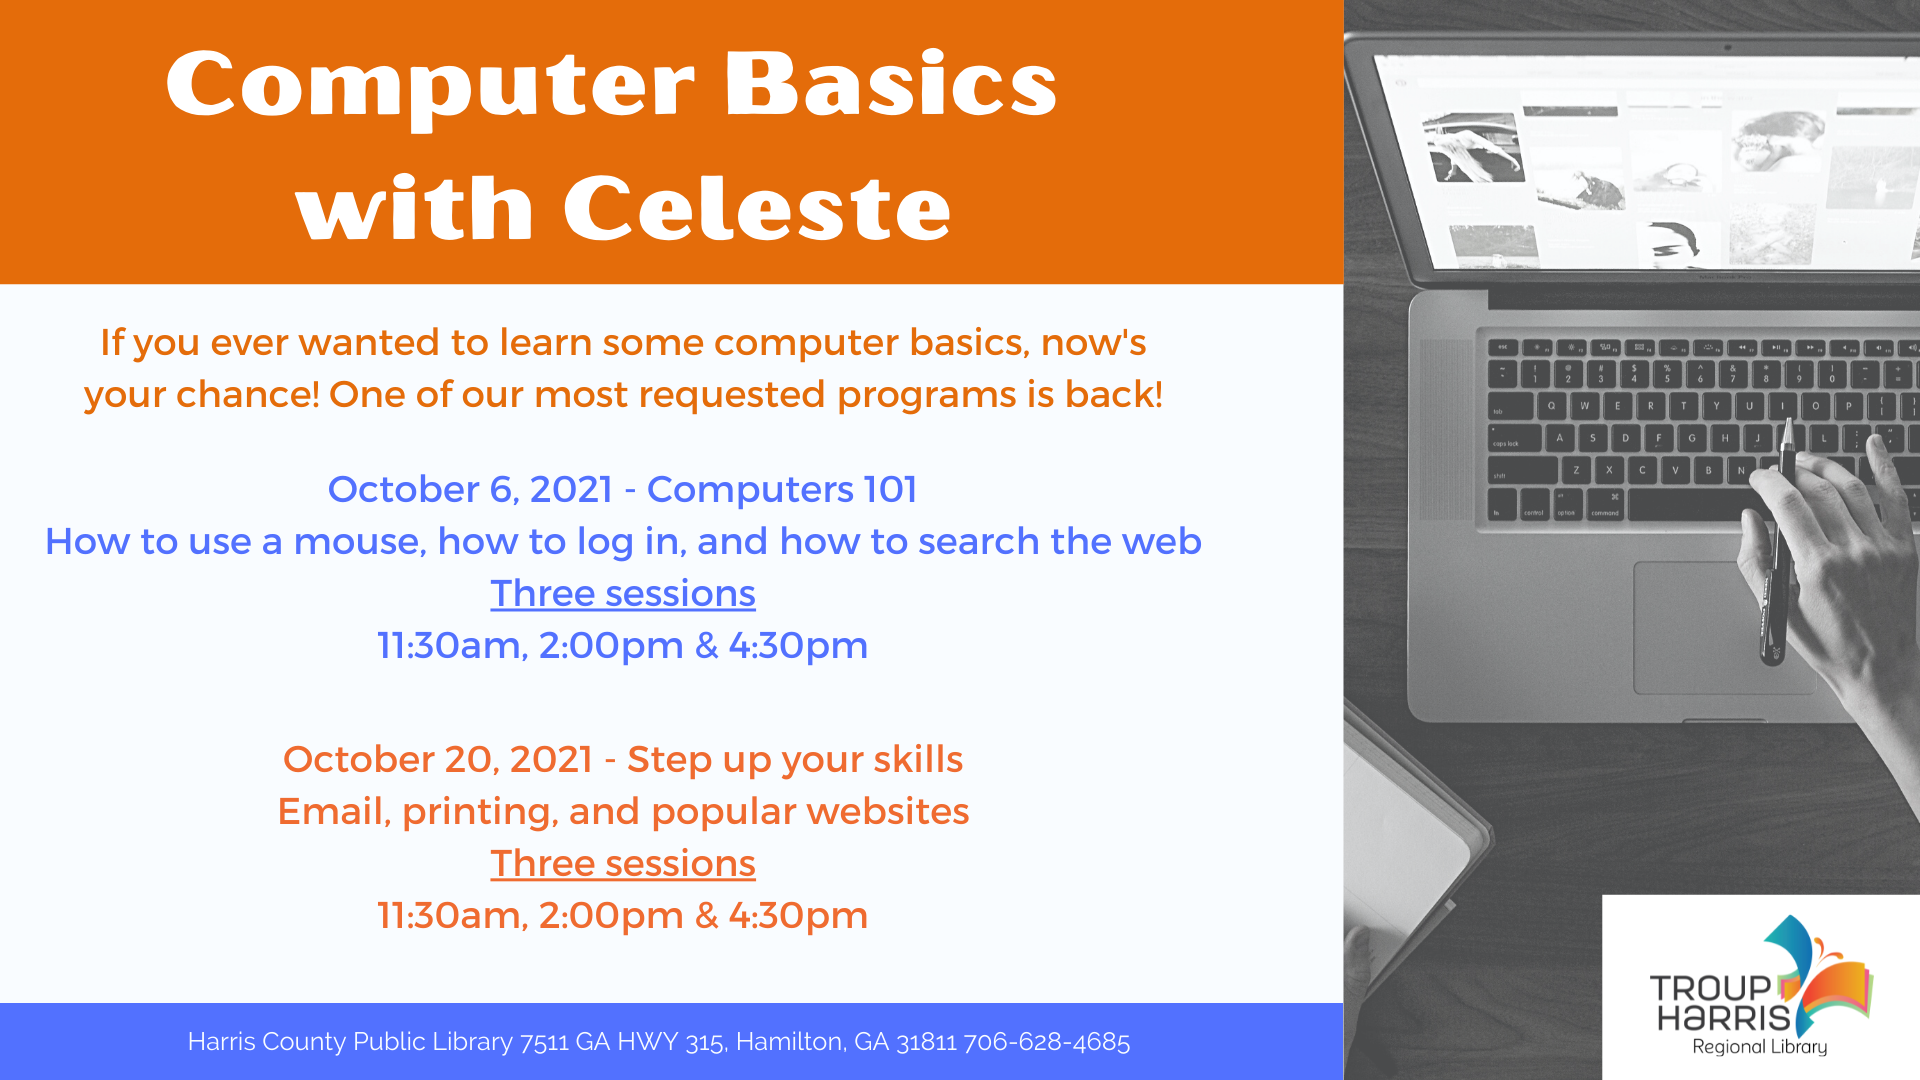 If you ever wanted to learn some computer basics, now's your chance! Join us at the Harris County Public Library on October 20 at 2 PM OR 4:30 PM. One of our most requested programs is back!